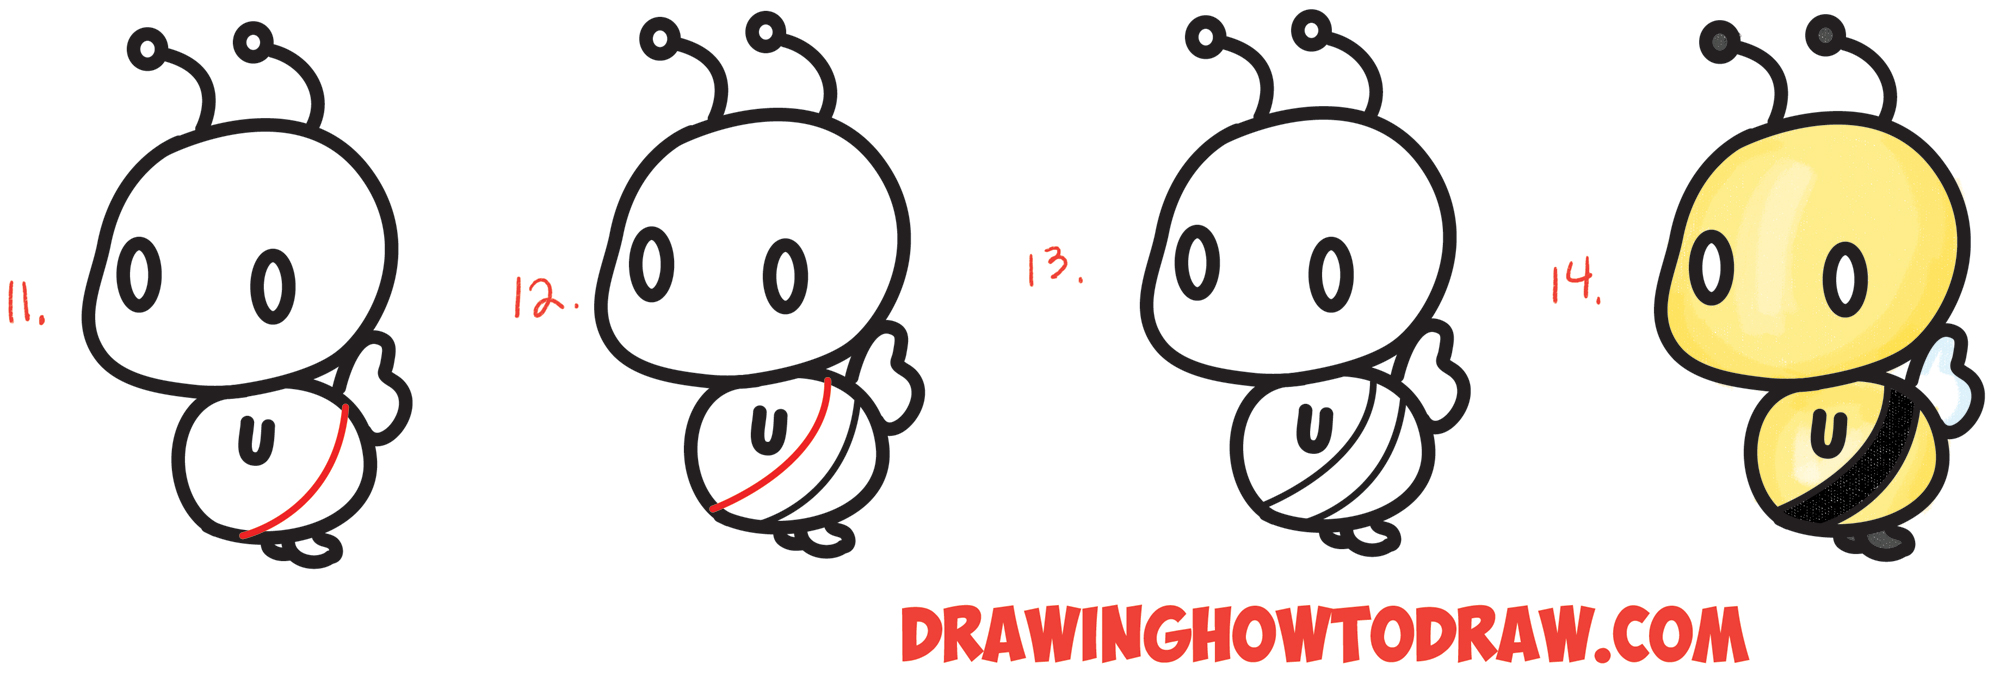 how to draw cute chibi kawaii characters with number 3 shapes